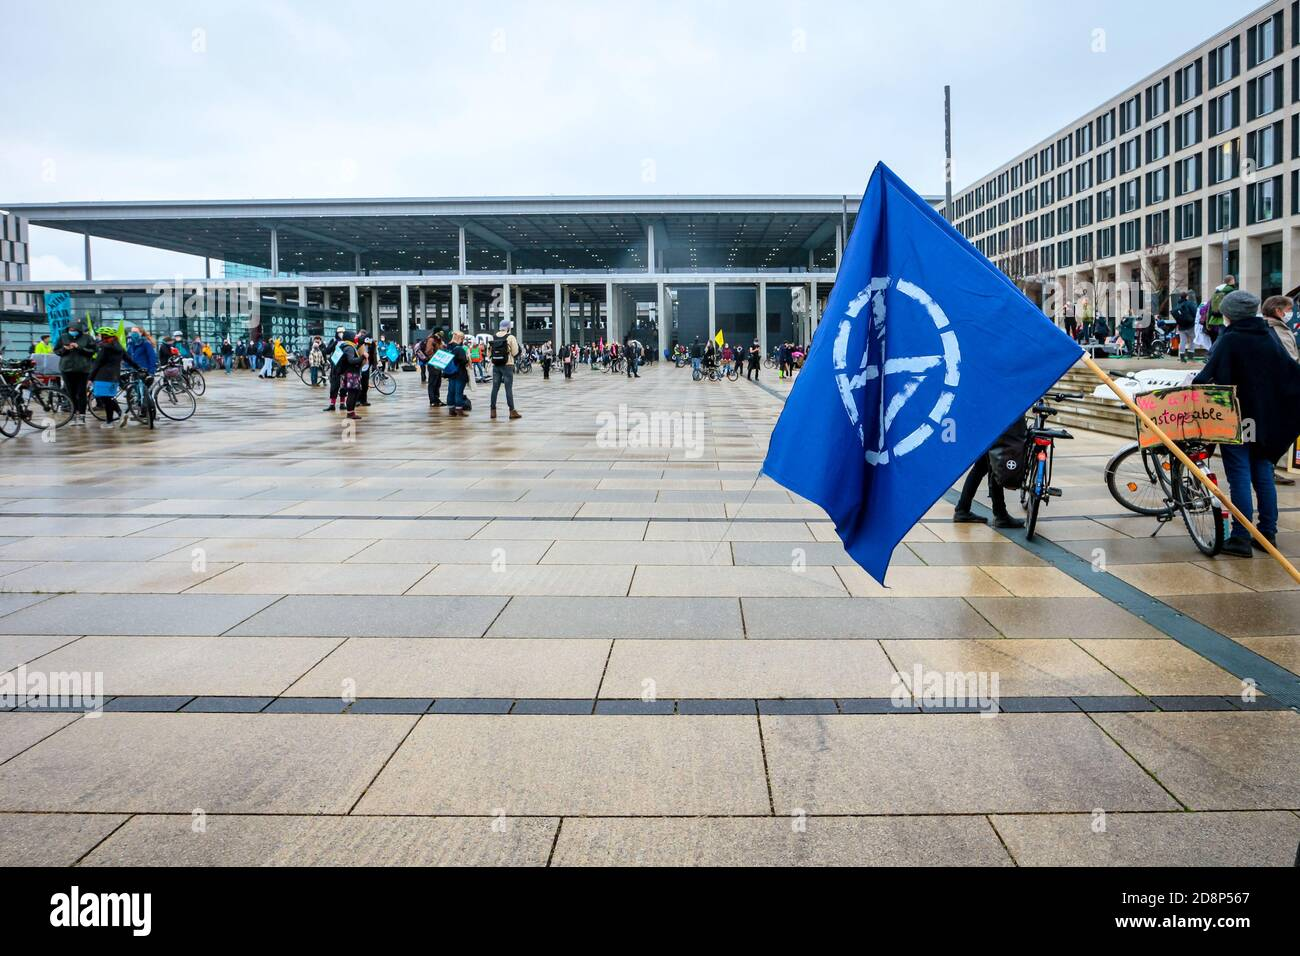 Extinction Rebellion flag as climate activists protest against the opening of new Berlin Brandenburg International Airport (BER). Stock Photo